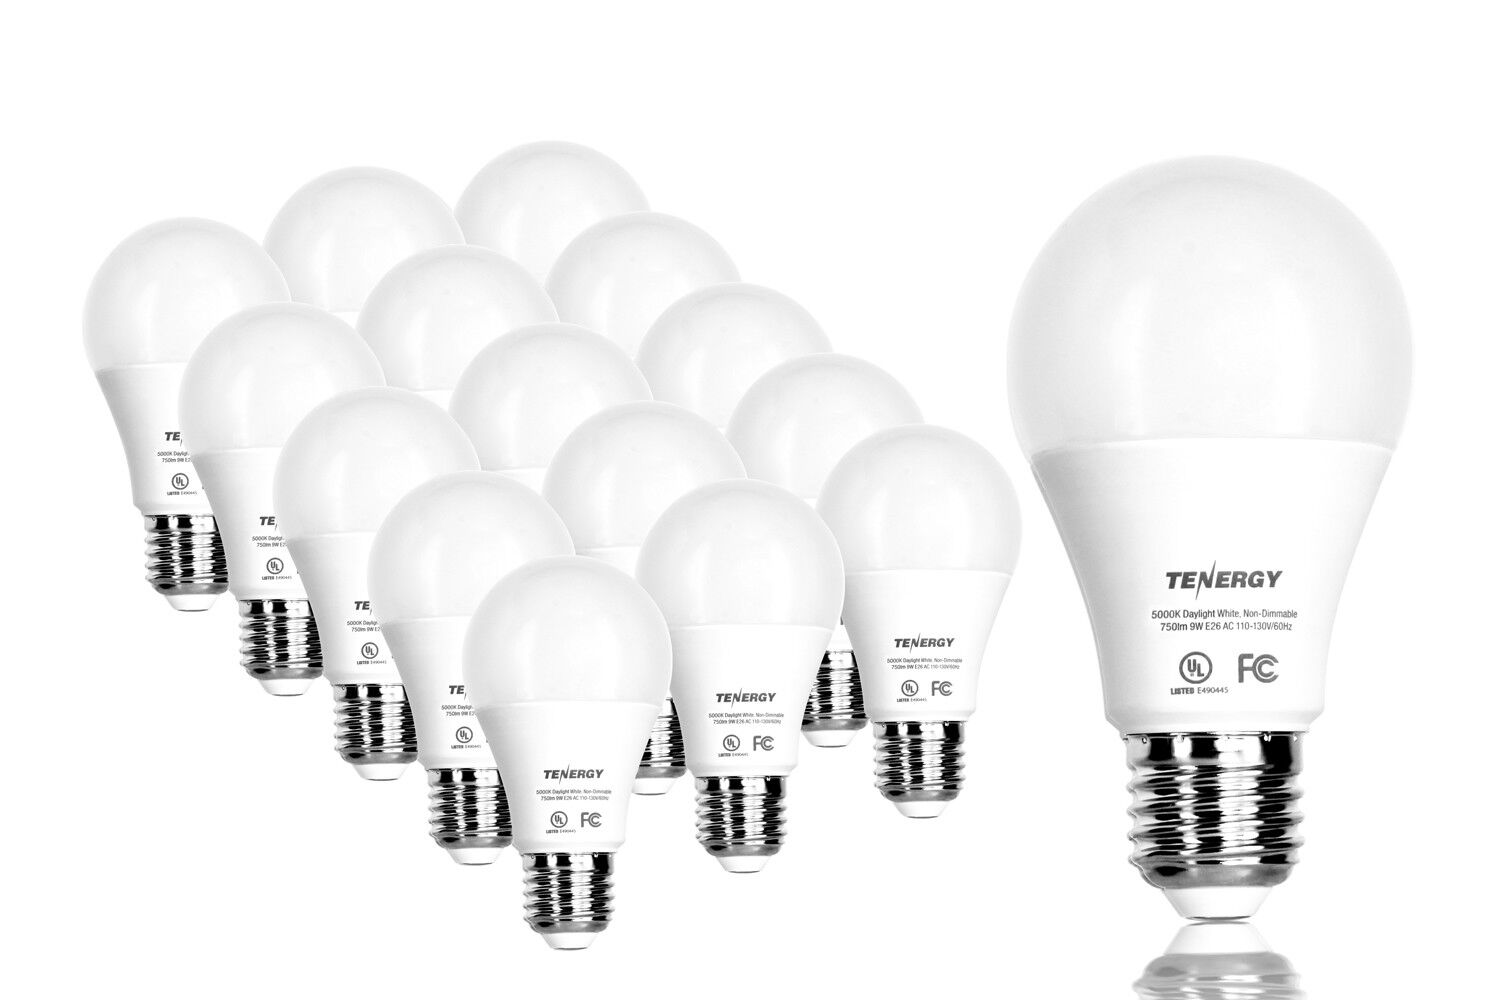 Details About Tenergy Led Light Bulbs 9w 60 Watt Daylight White Soft White 5000k 2700k